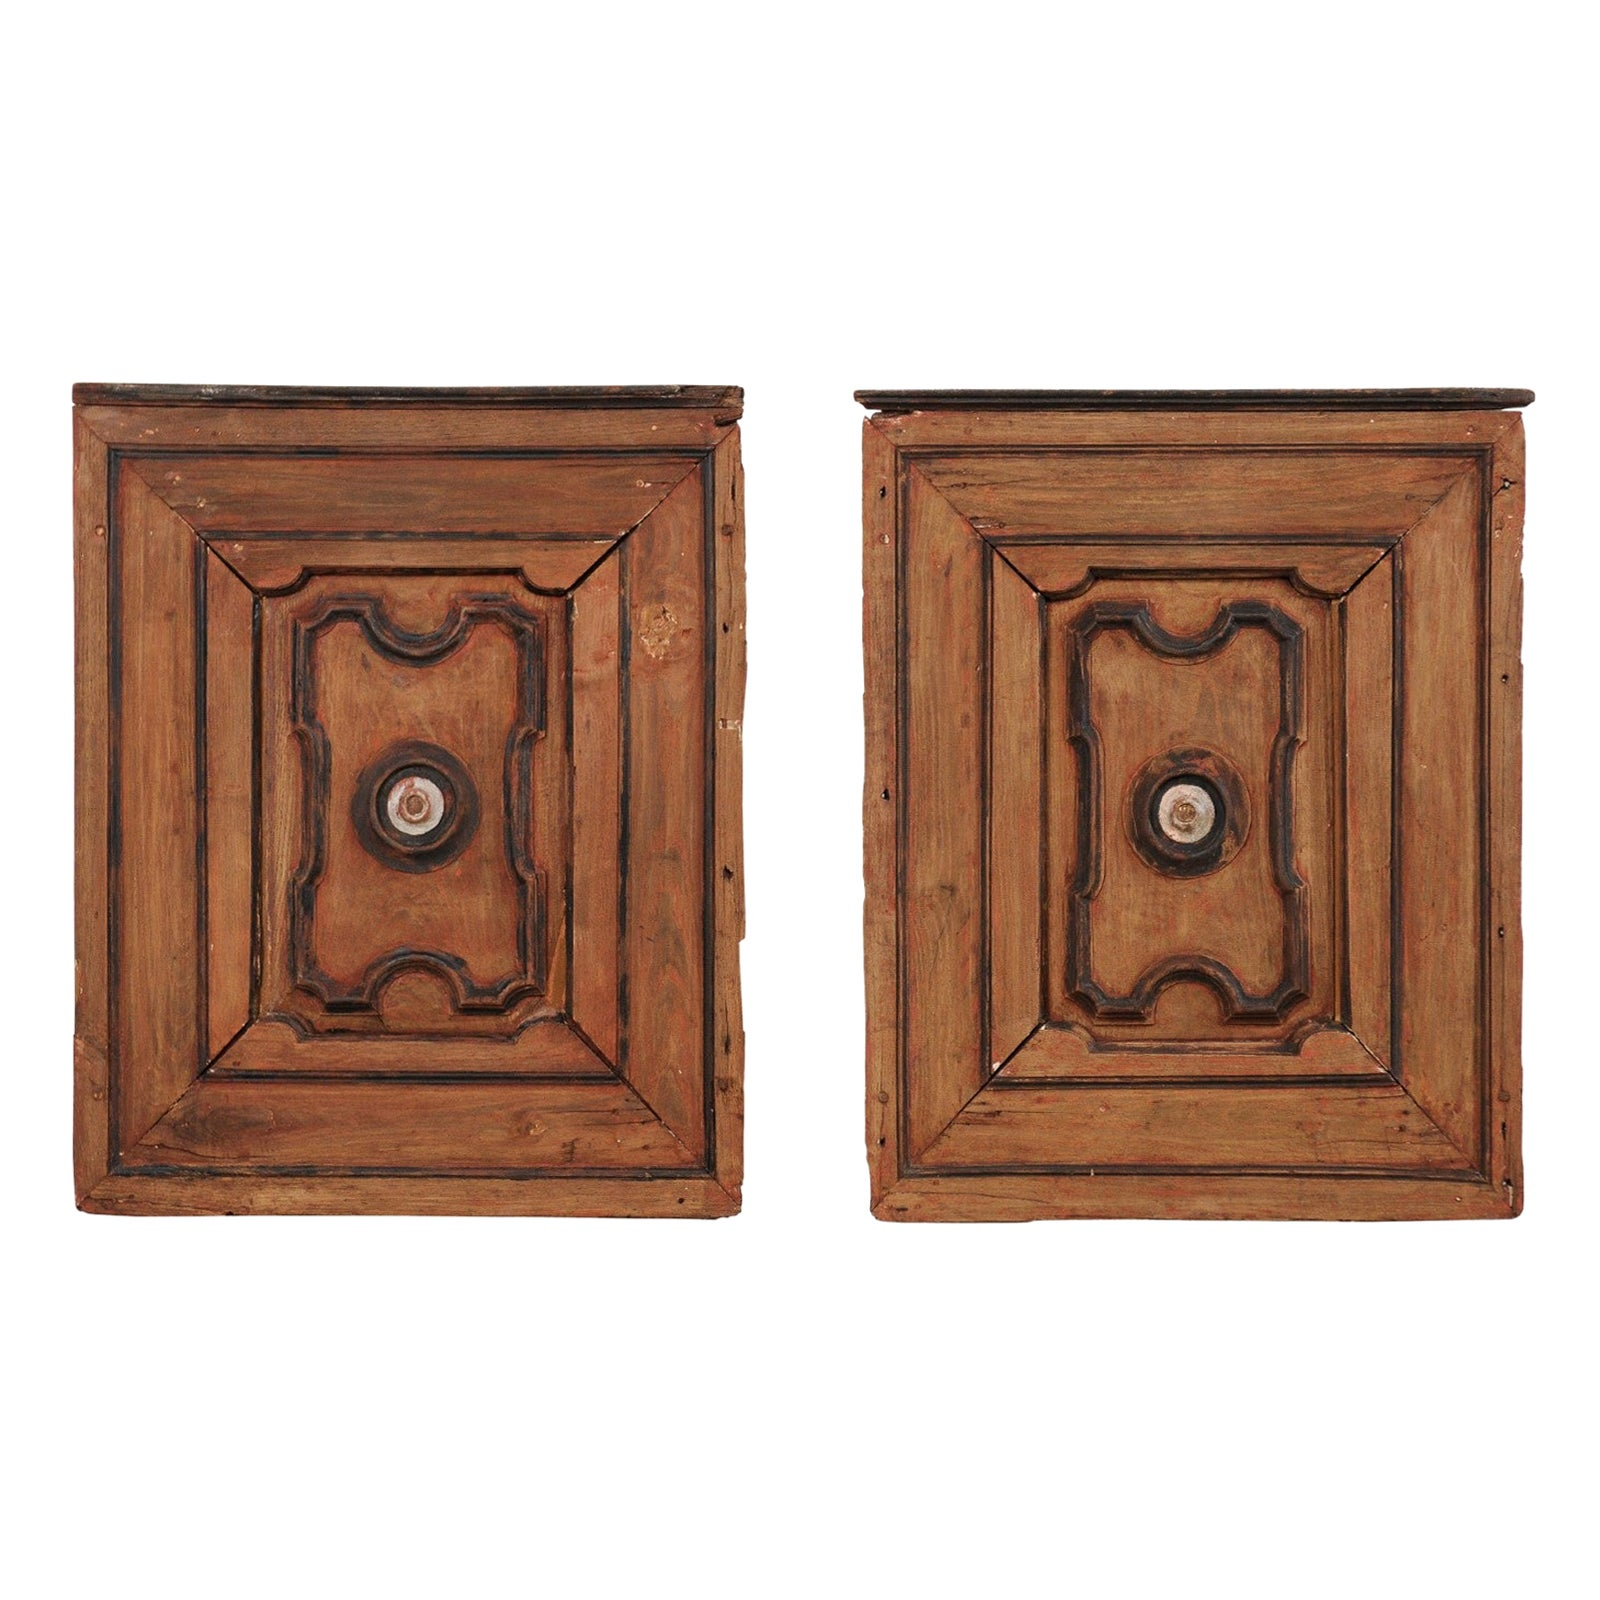 Pair of Italian Decorative Wall Panels from Turn of 18th-19th Century